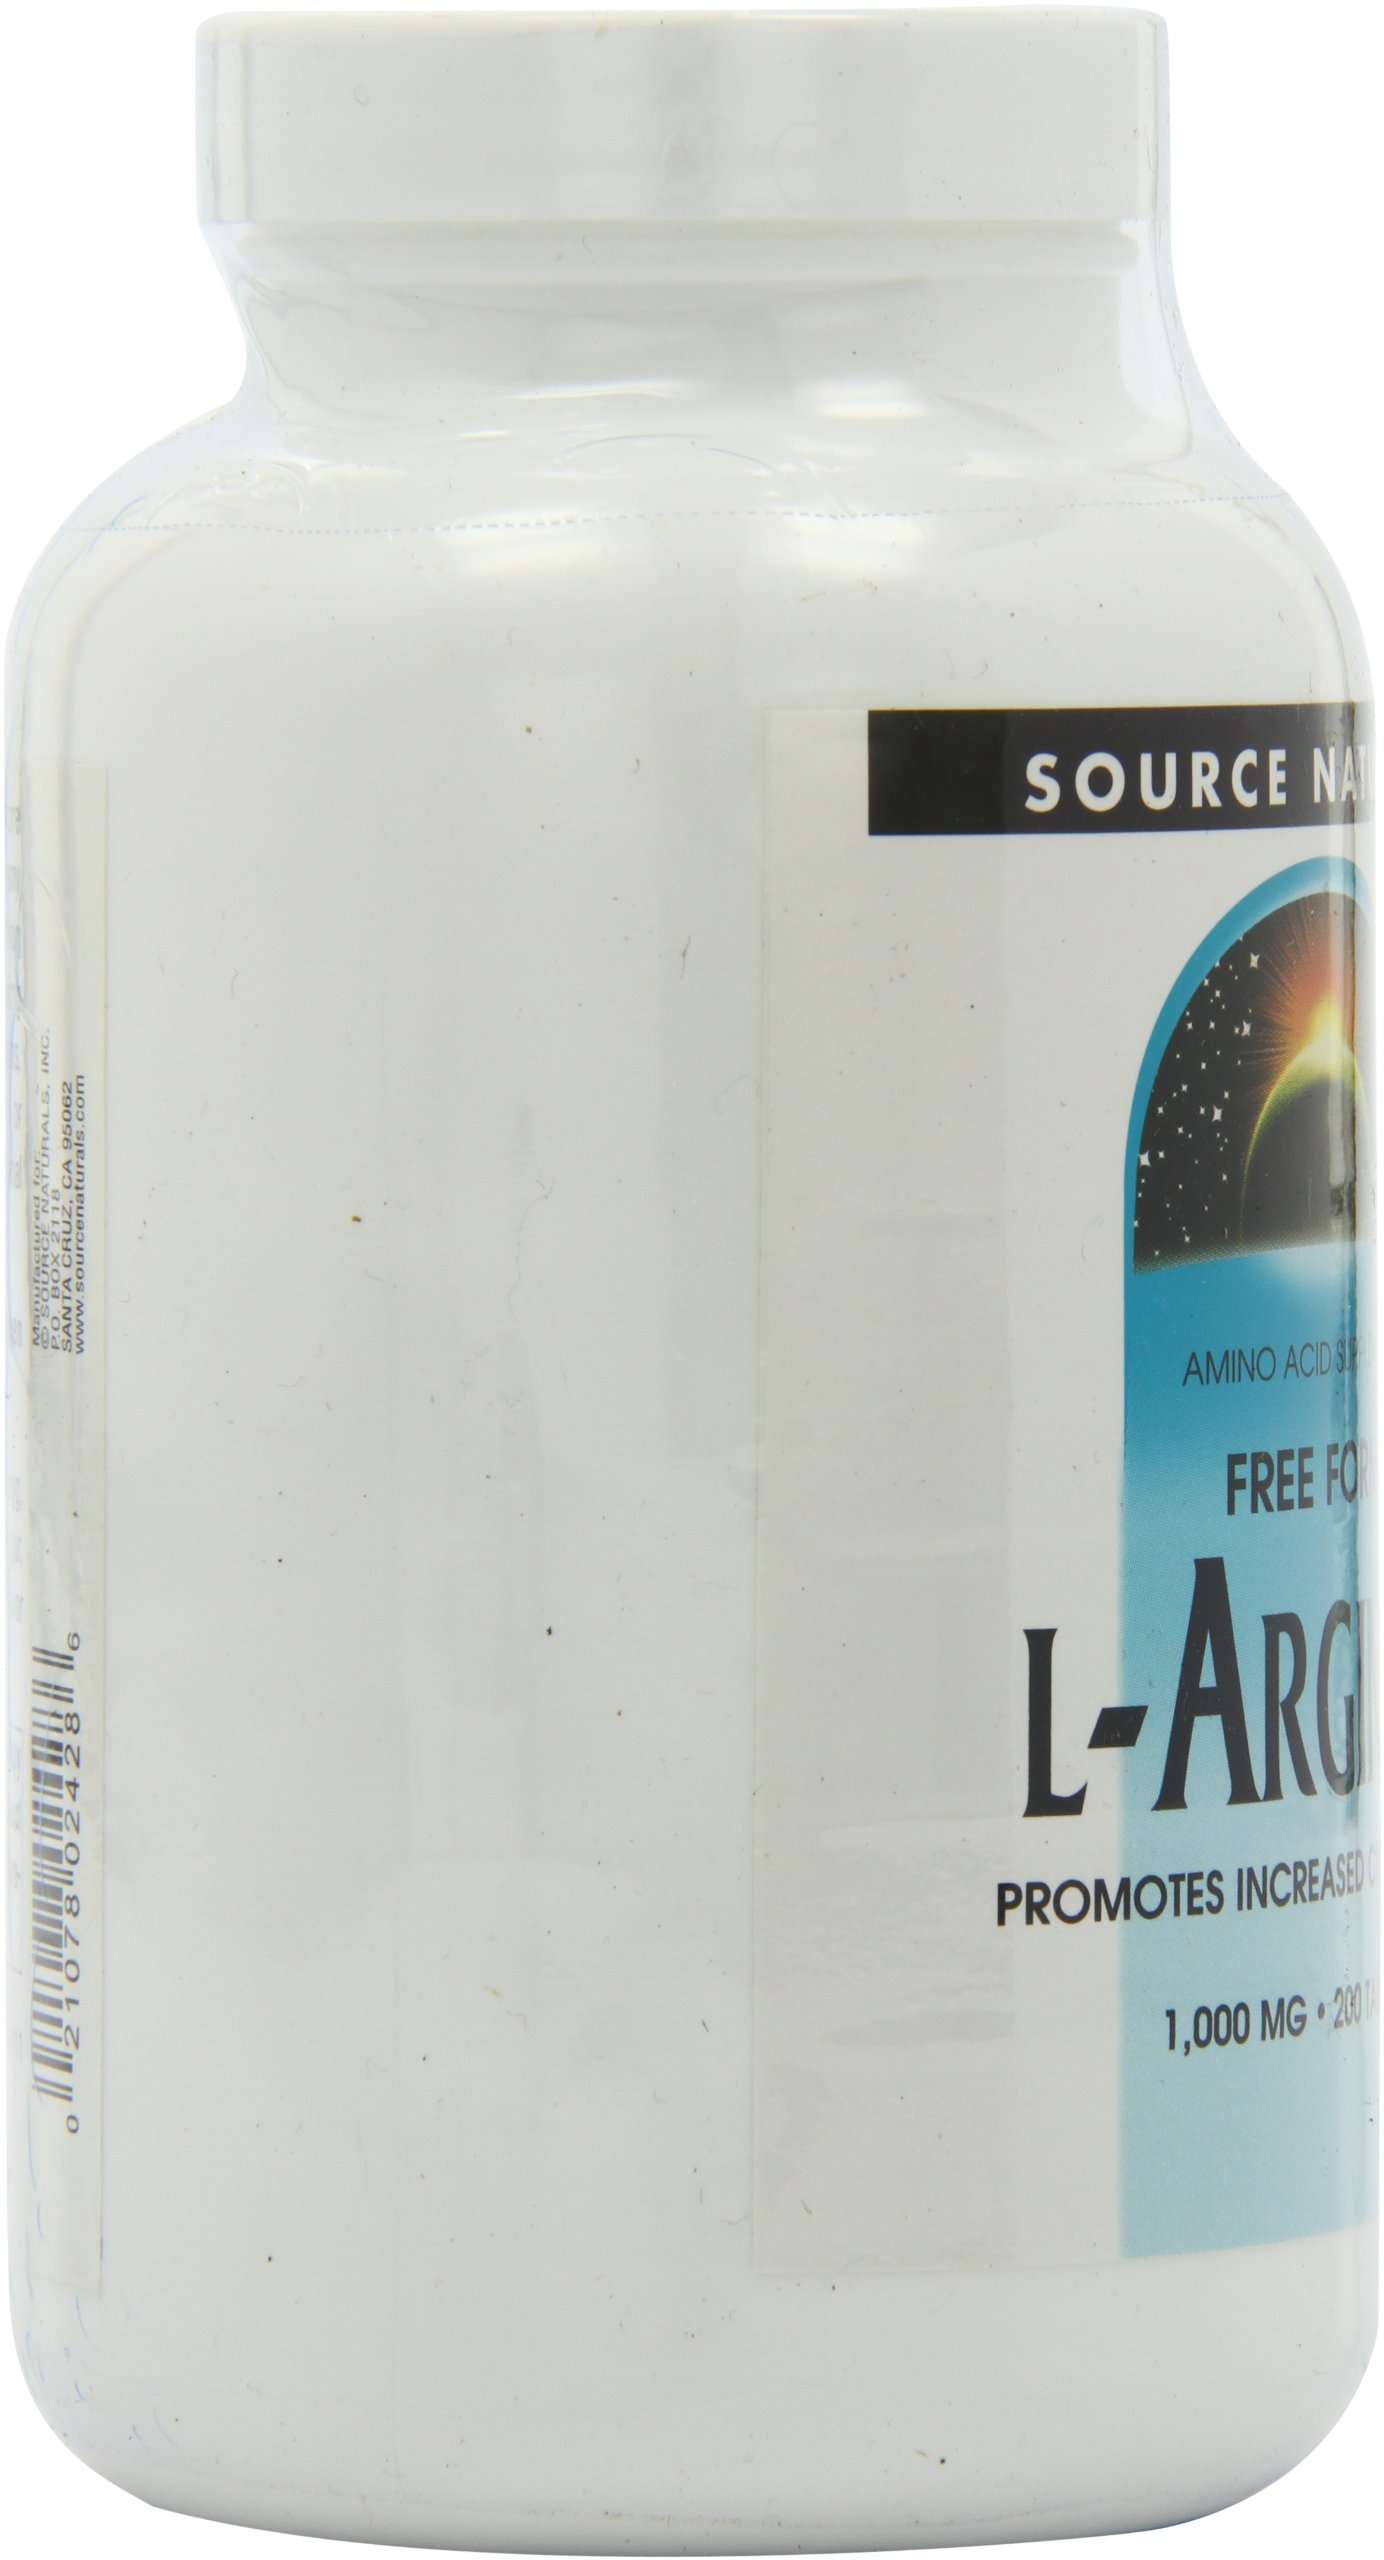 Source Naturals L-Arginine 1000mg Free-Form, Promotes Increased Circulation, 200 Tablets